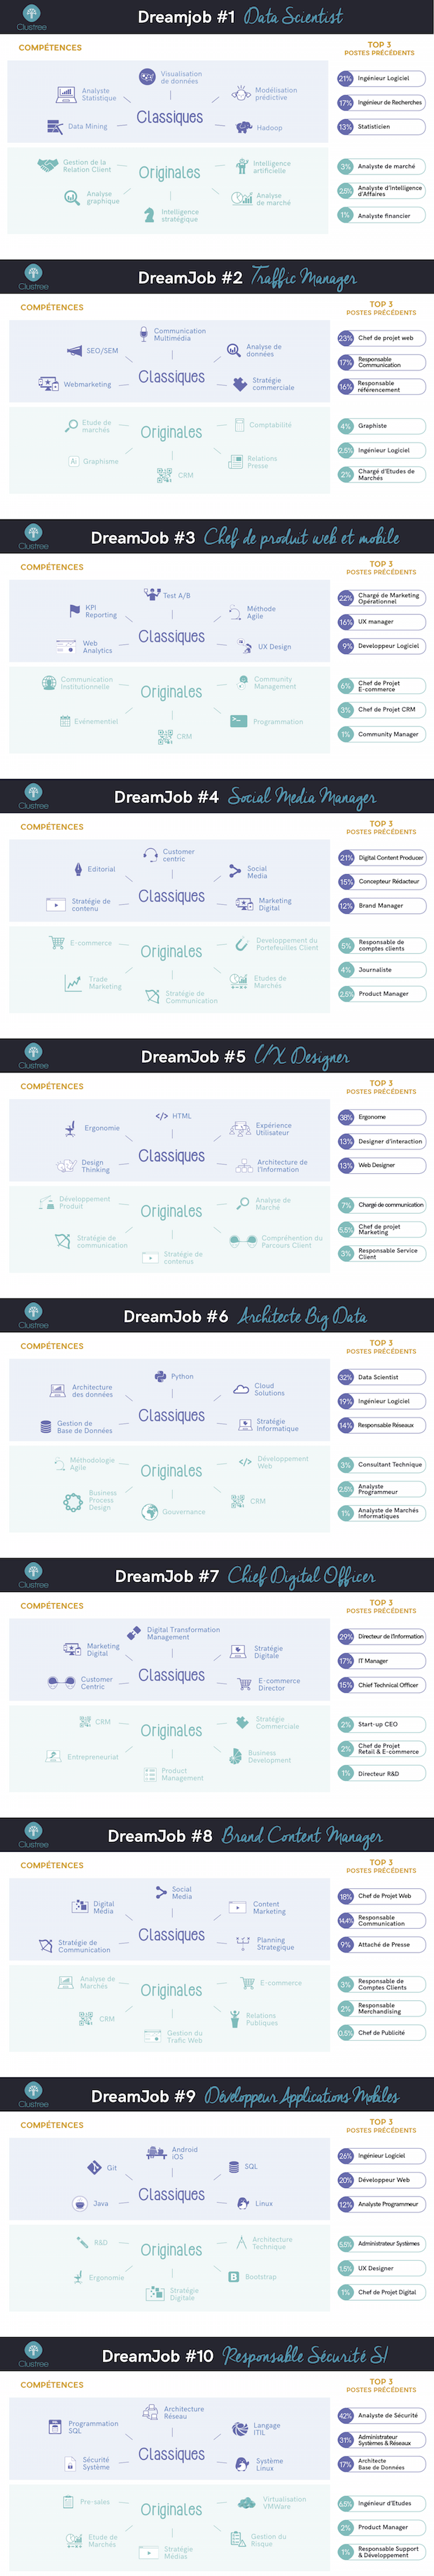 clustree_Infographie_dreamjobs